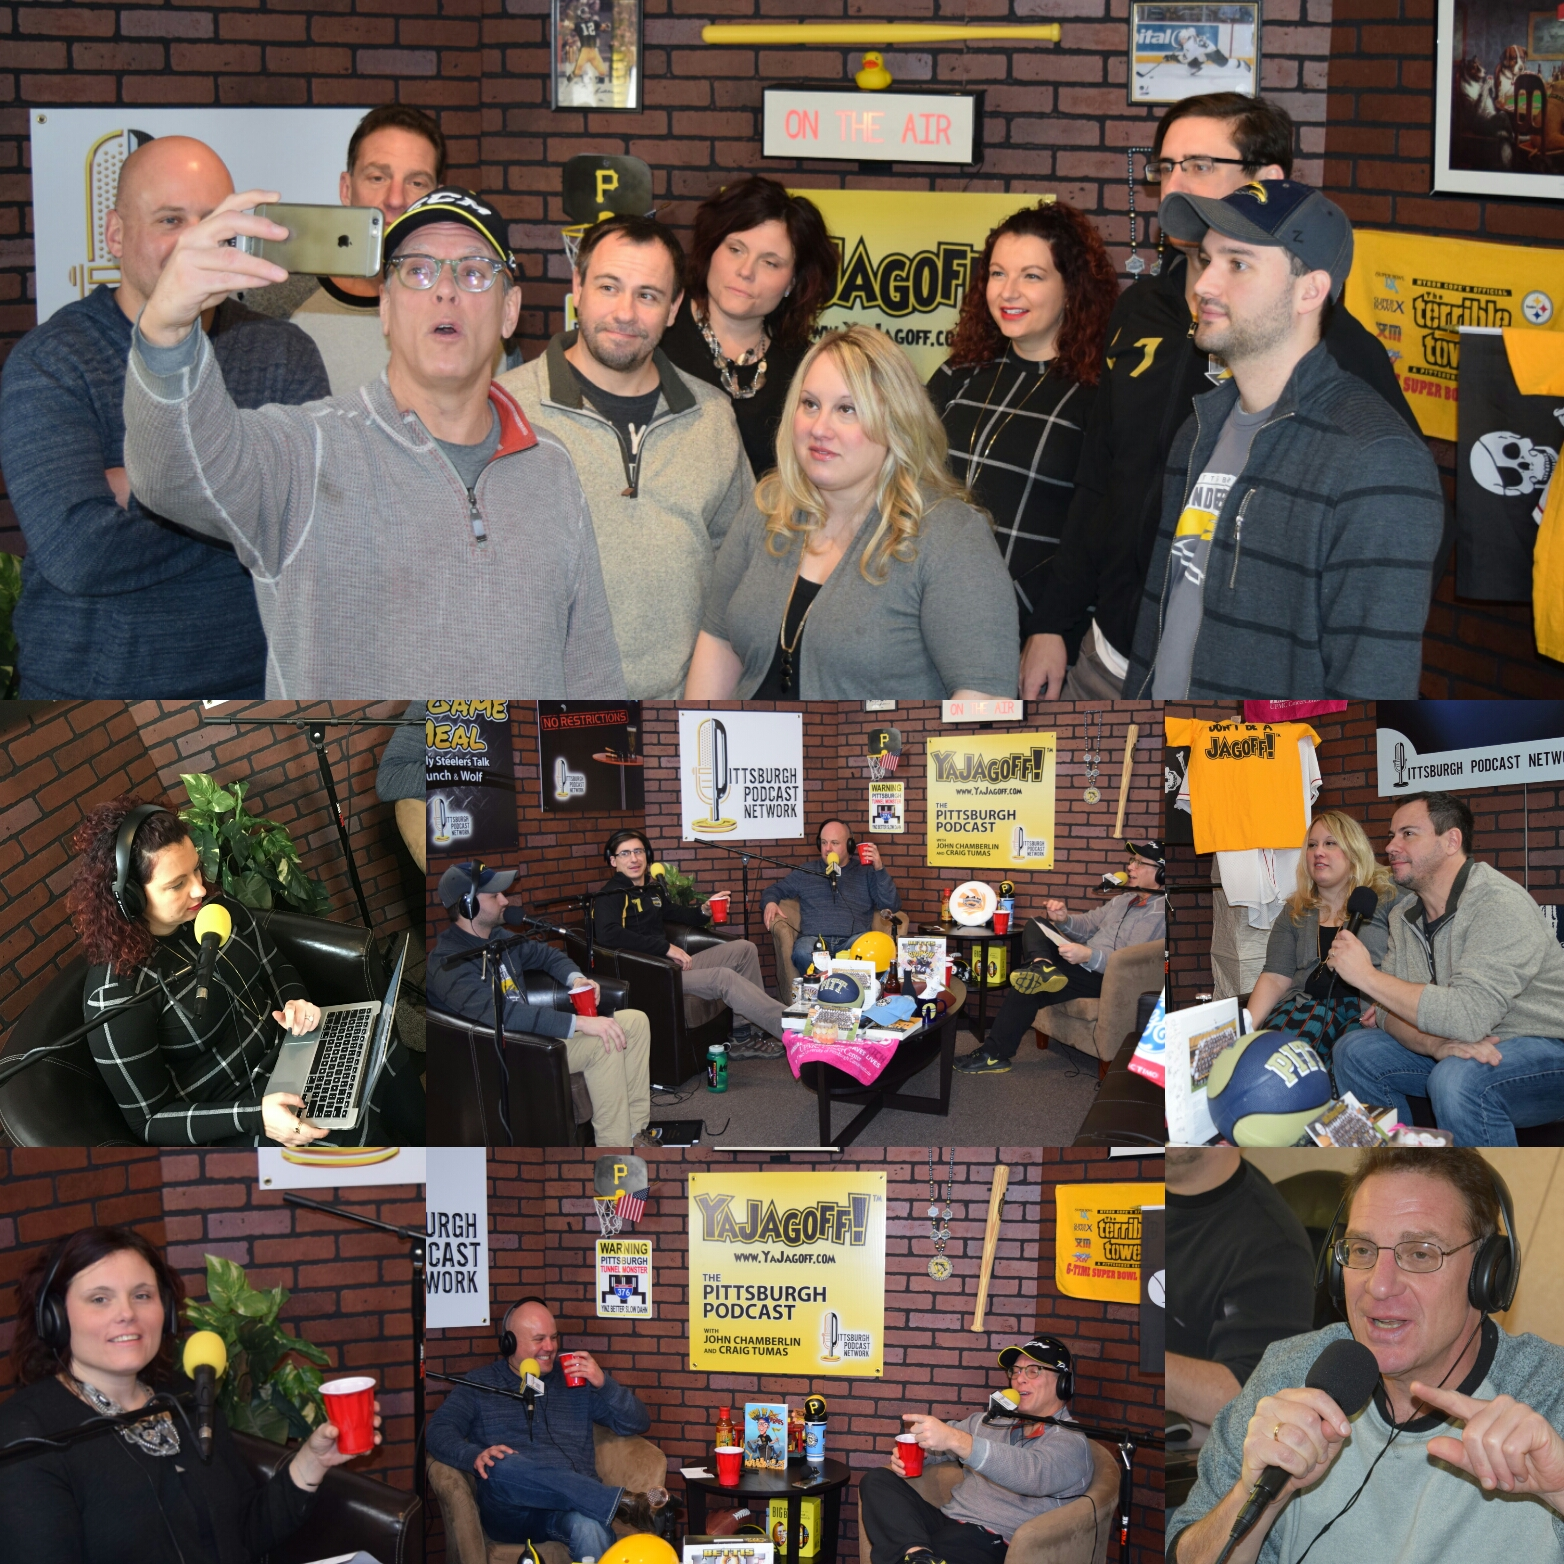 yaJagoff Podcast, Pittsburgh Podcast, Jagoff, Jagoffs, Yelp Pittsburgh, Pittsburgh Thunderbirds, Ultimate Disc Golf, upgruv